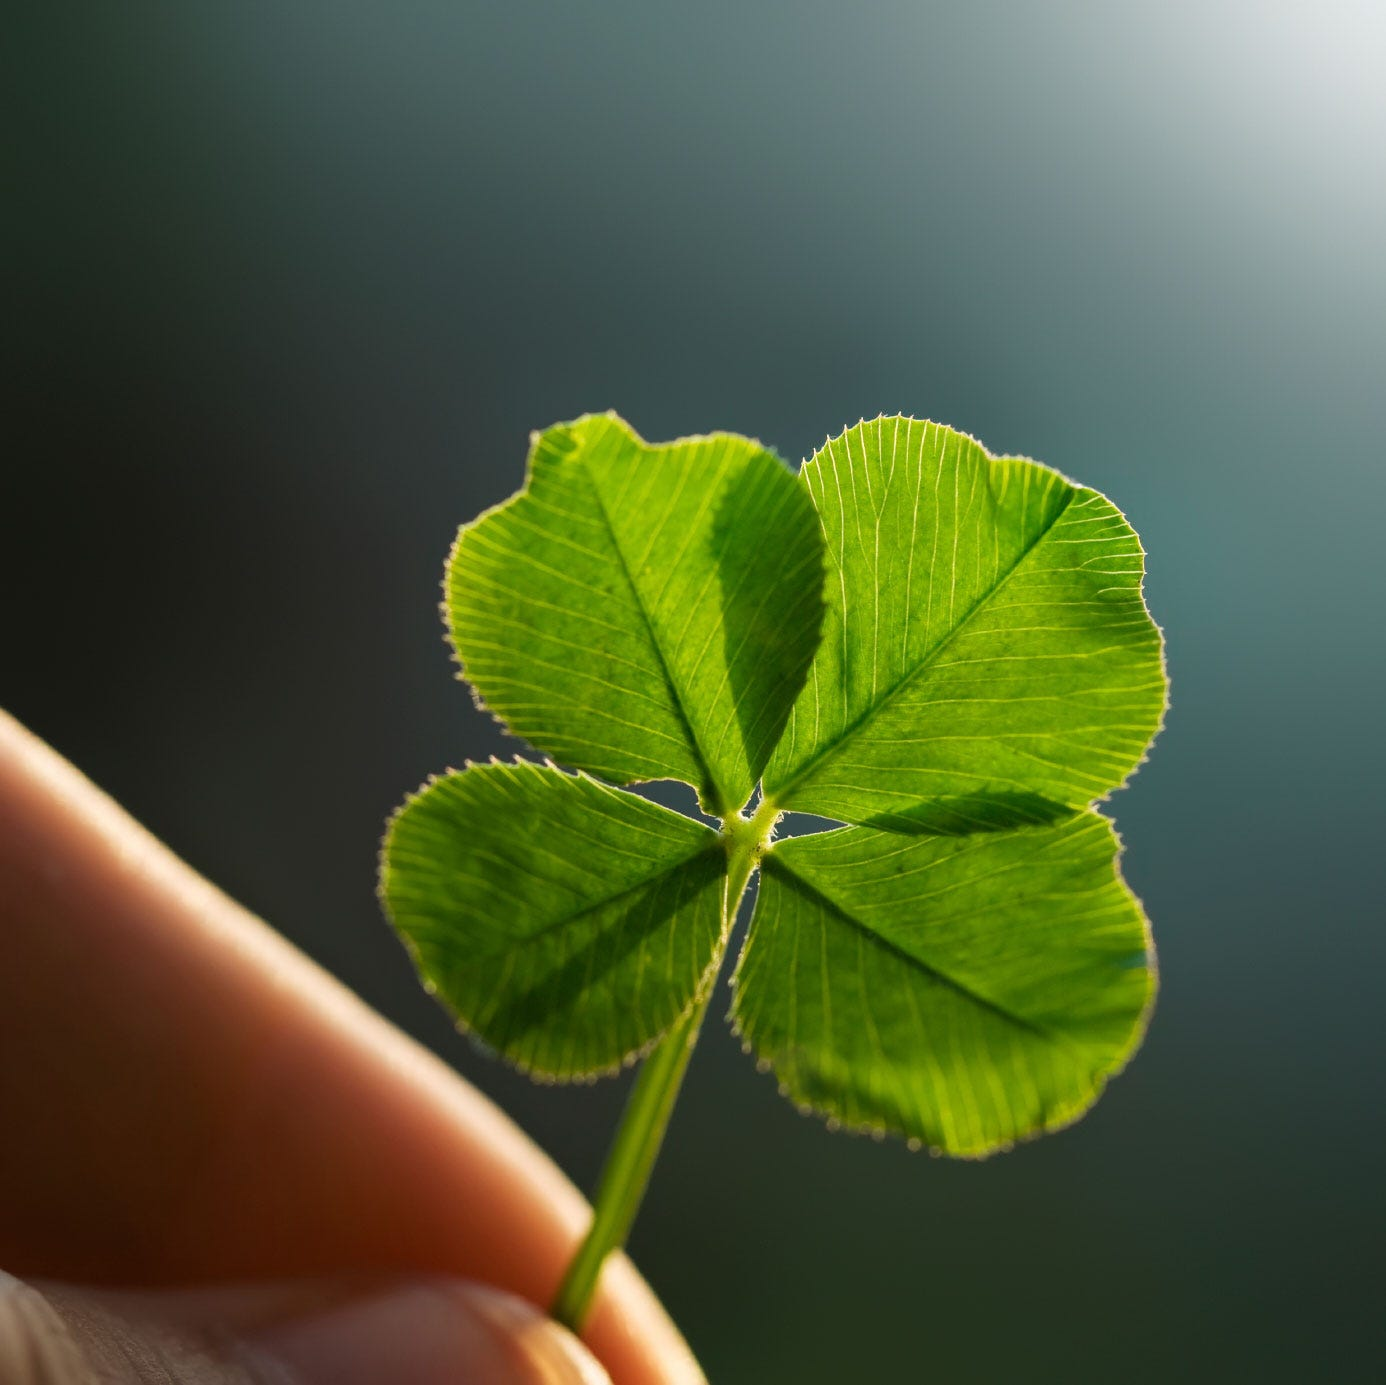 About Four Leaf Clovers - Reasons For Finding A Clover With Four Leaves